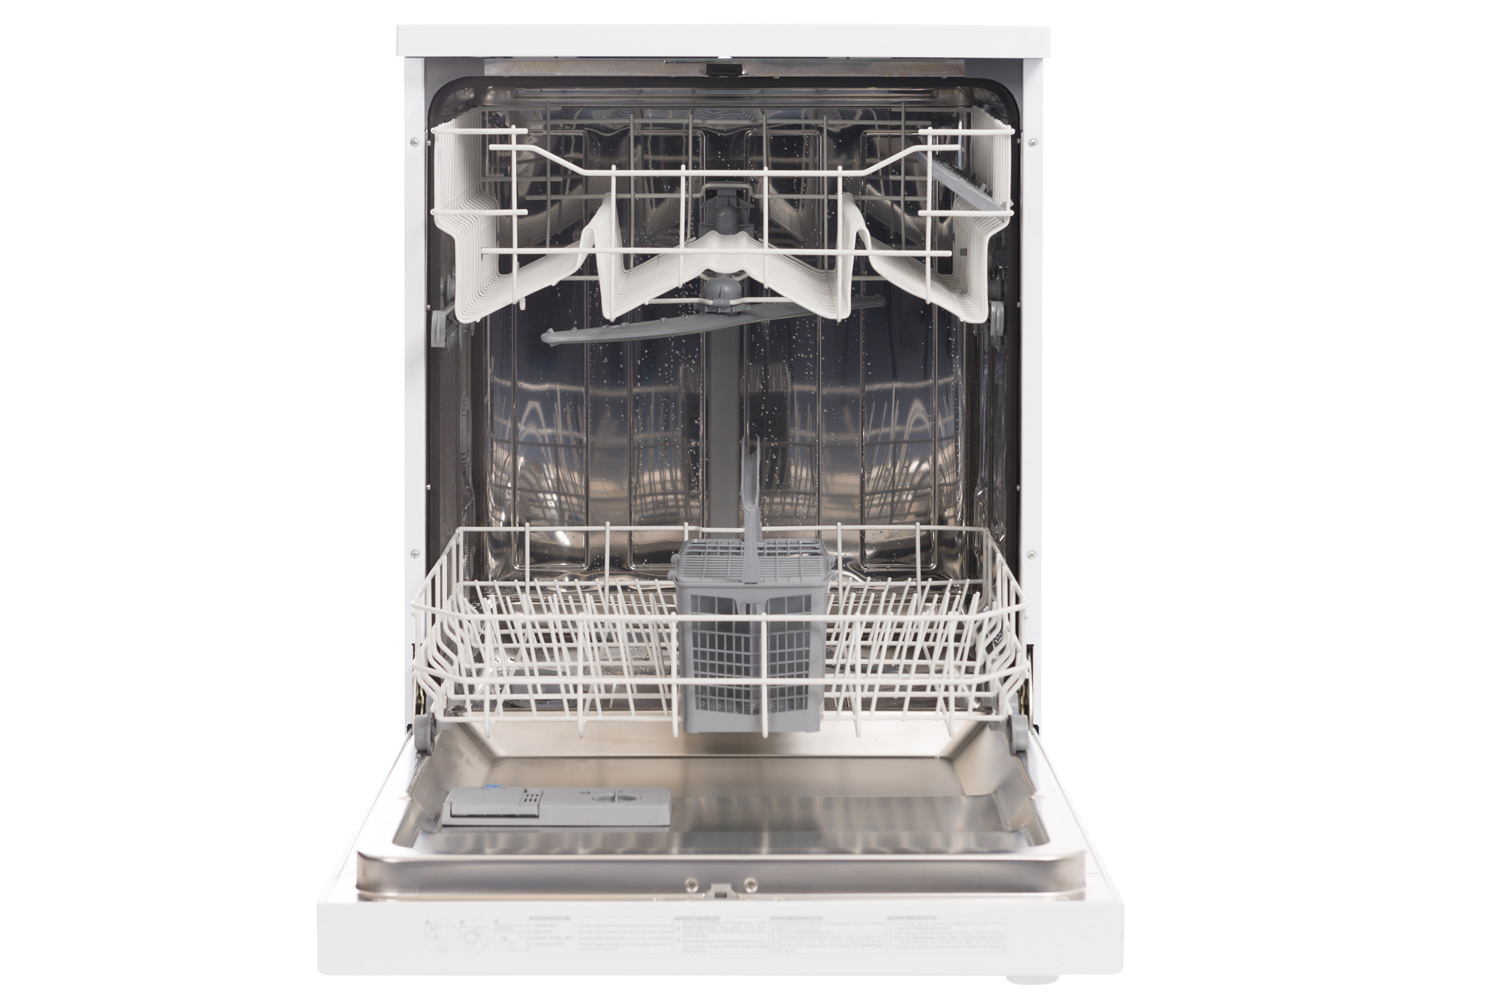 Finlux freestanding dishwasher place fdf w ireland